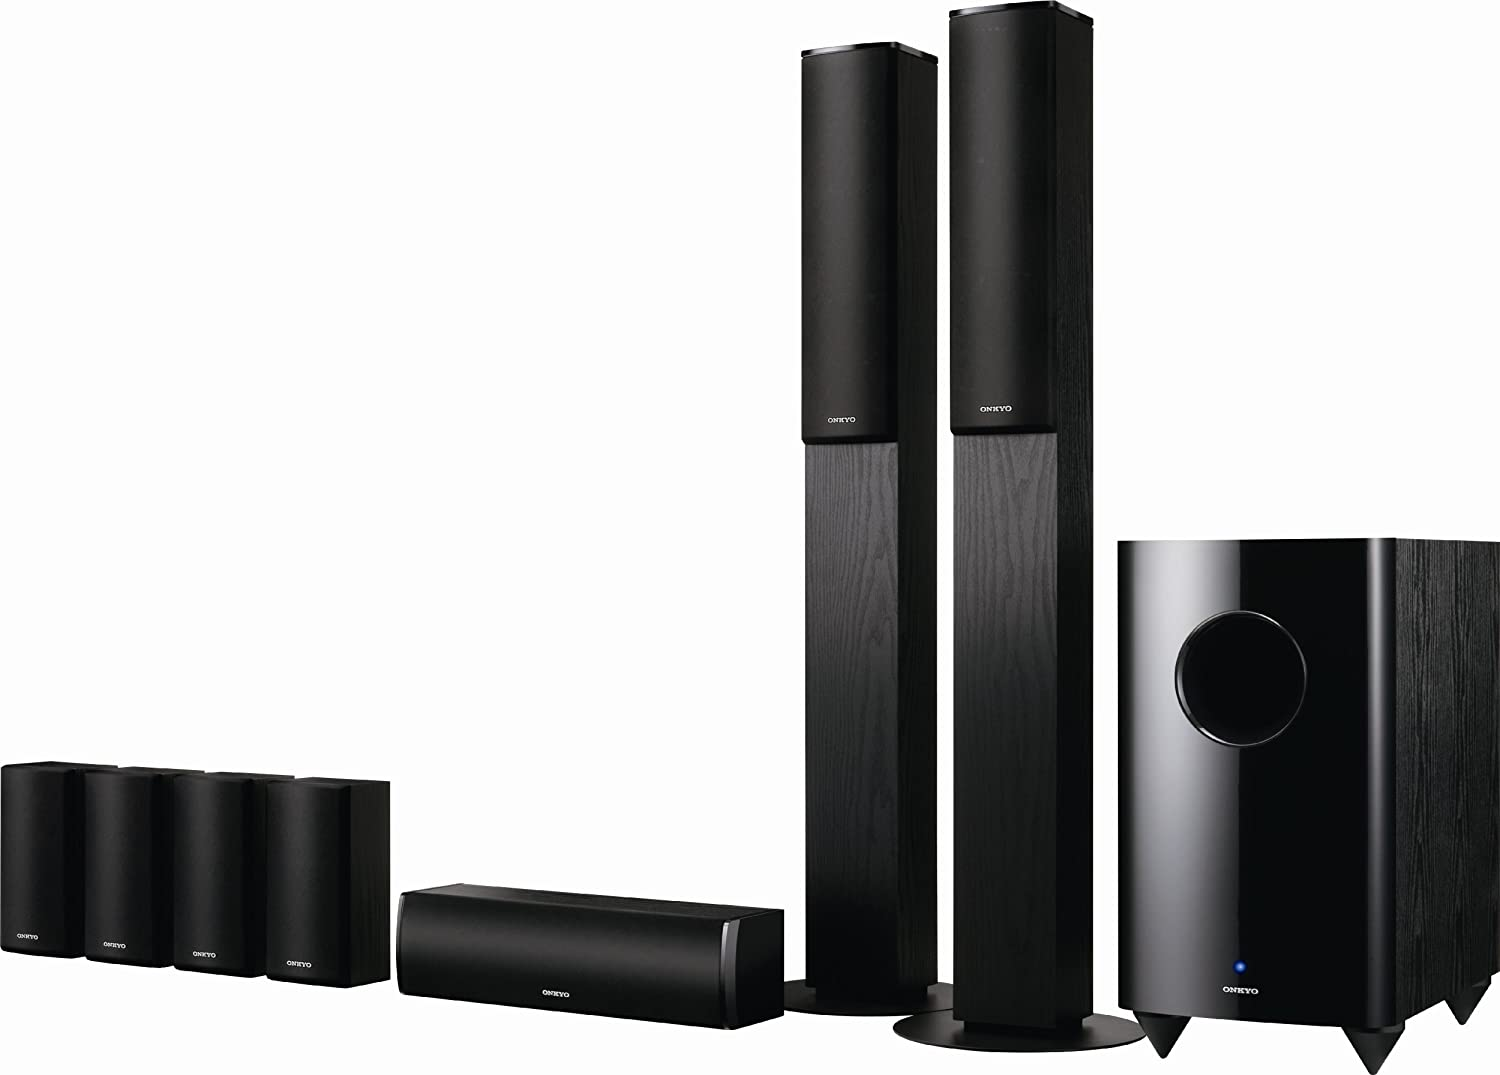 Amazon.com: Onkyo SKS-HT870 Home Theater Speaker System: Home Audio ...